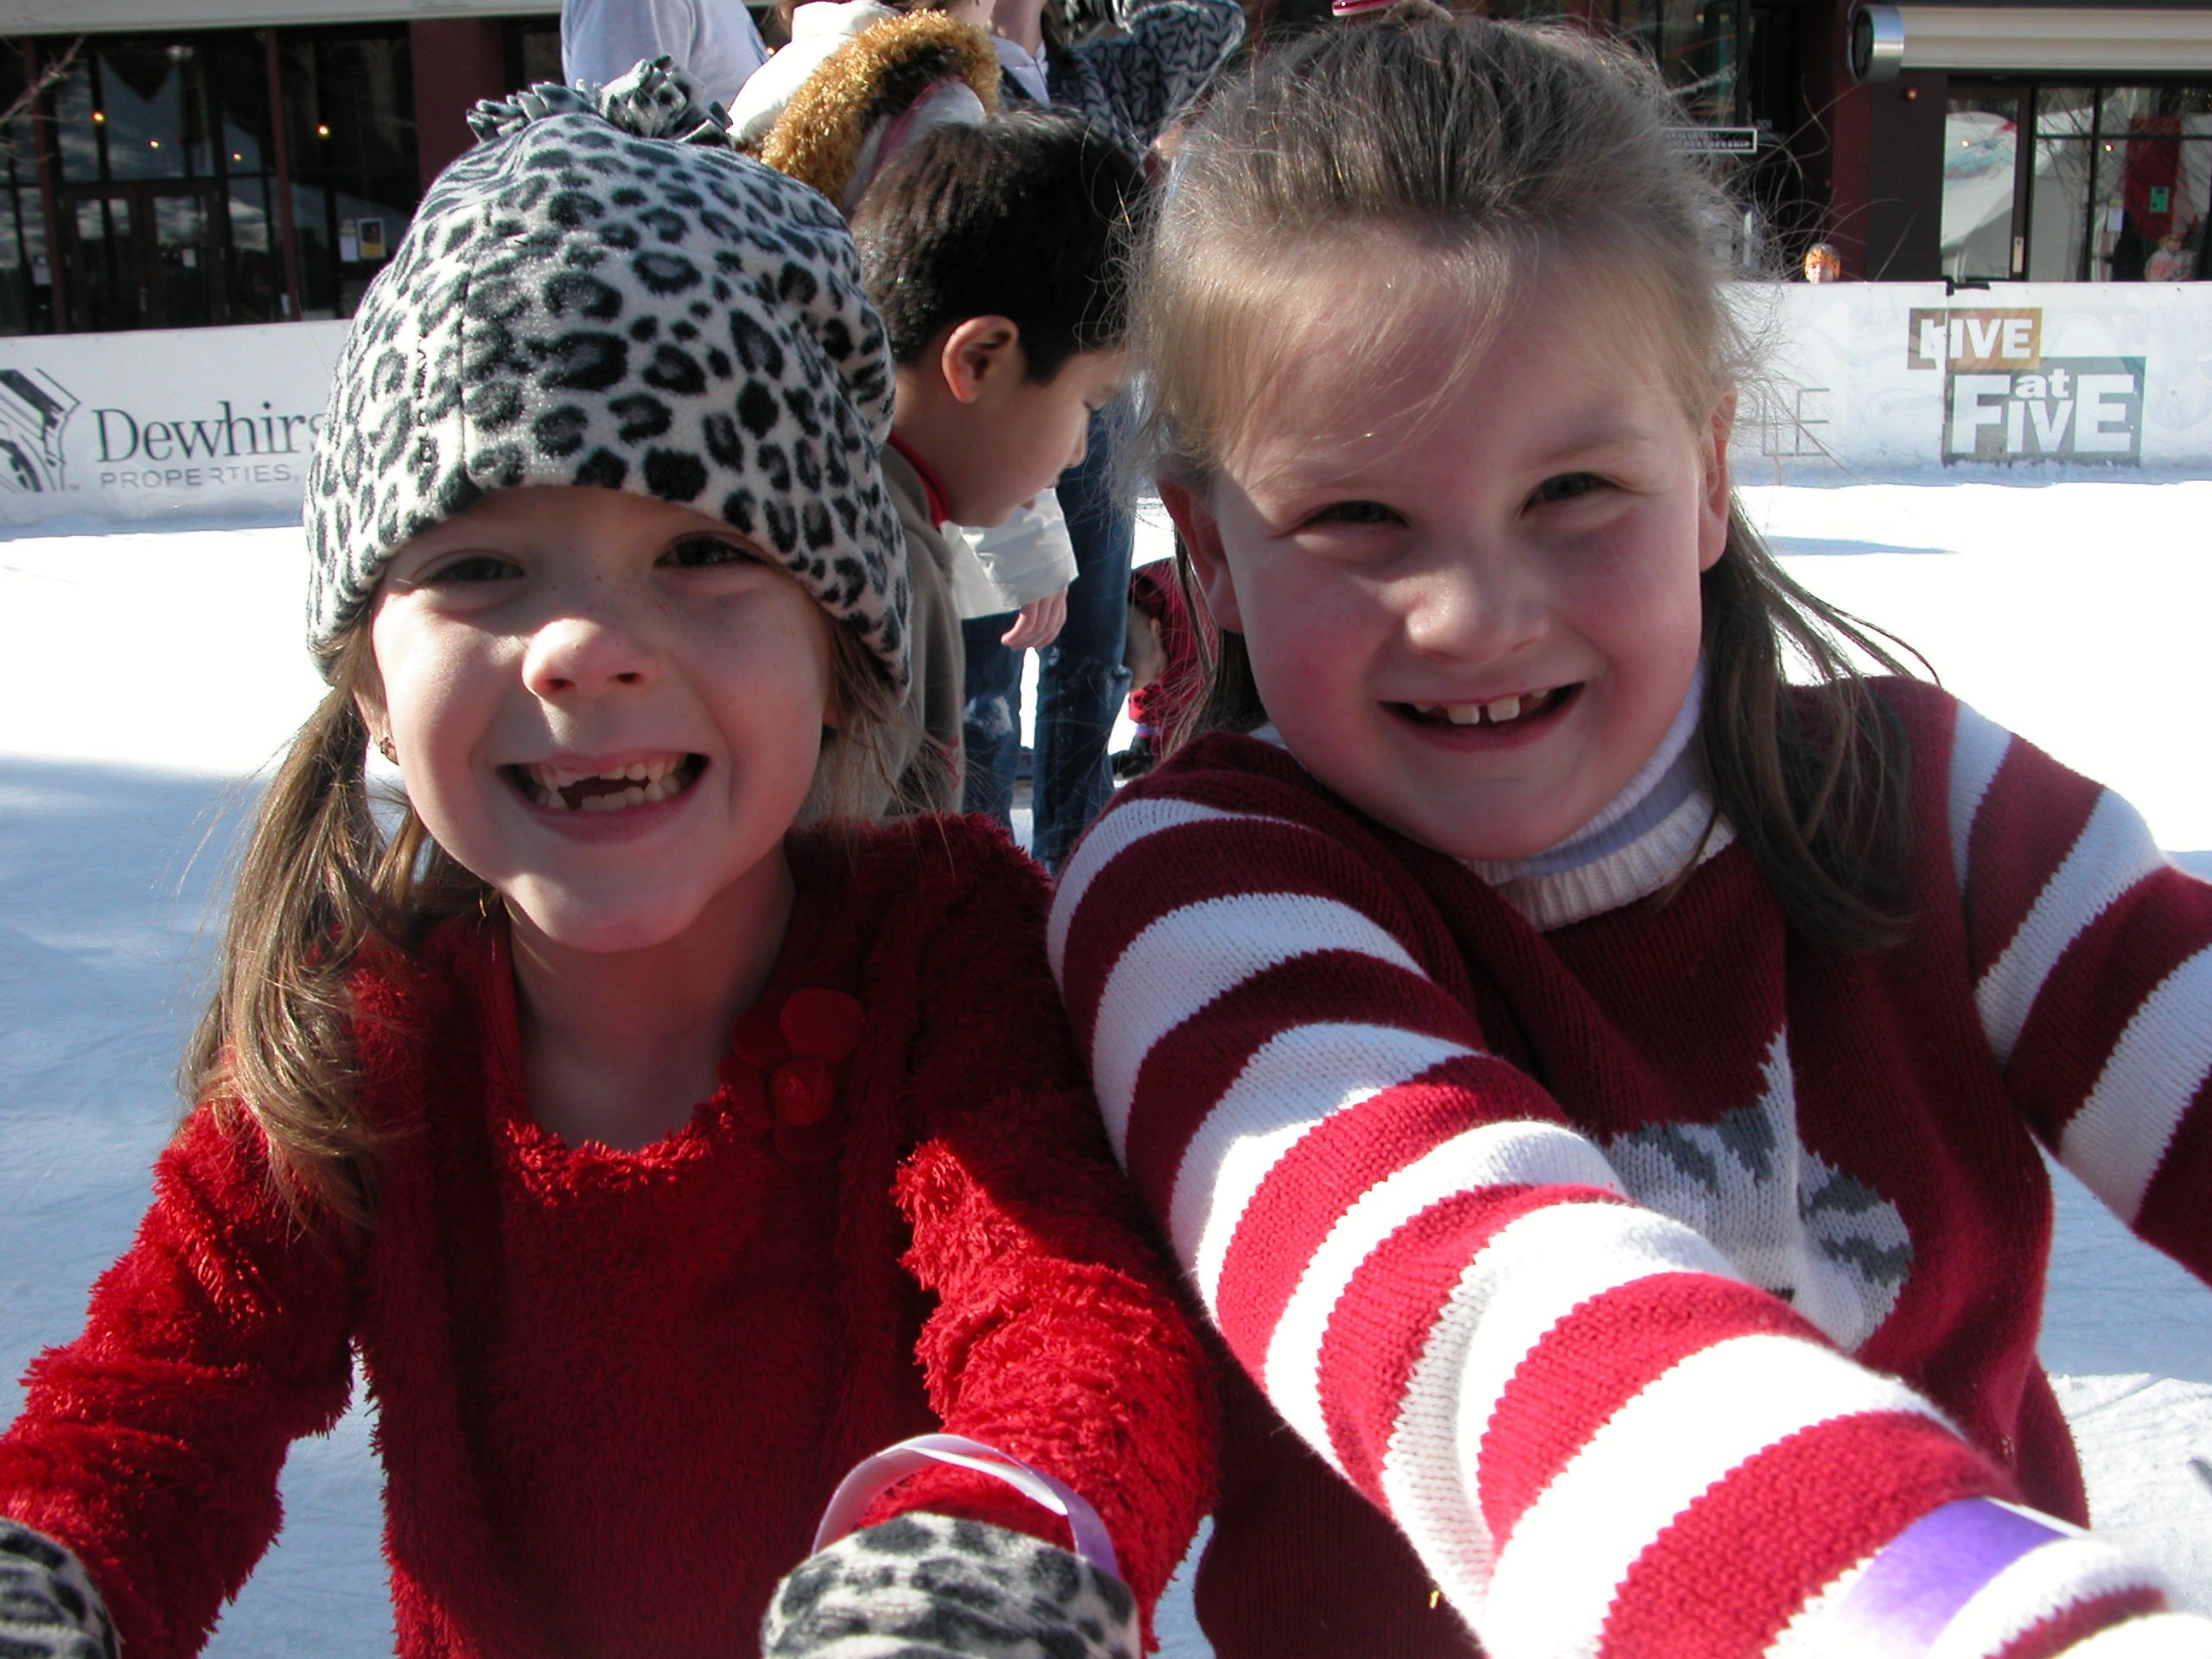 Jenna Witt, 6, skates with her friend, Lauren Ferguson, 6, at the ice skating rink in Market Square Dec. 23. Jenna is the daughter of Jack and Julee Witt, and Lauren is the daughter of Jennifer and Shawn Little.